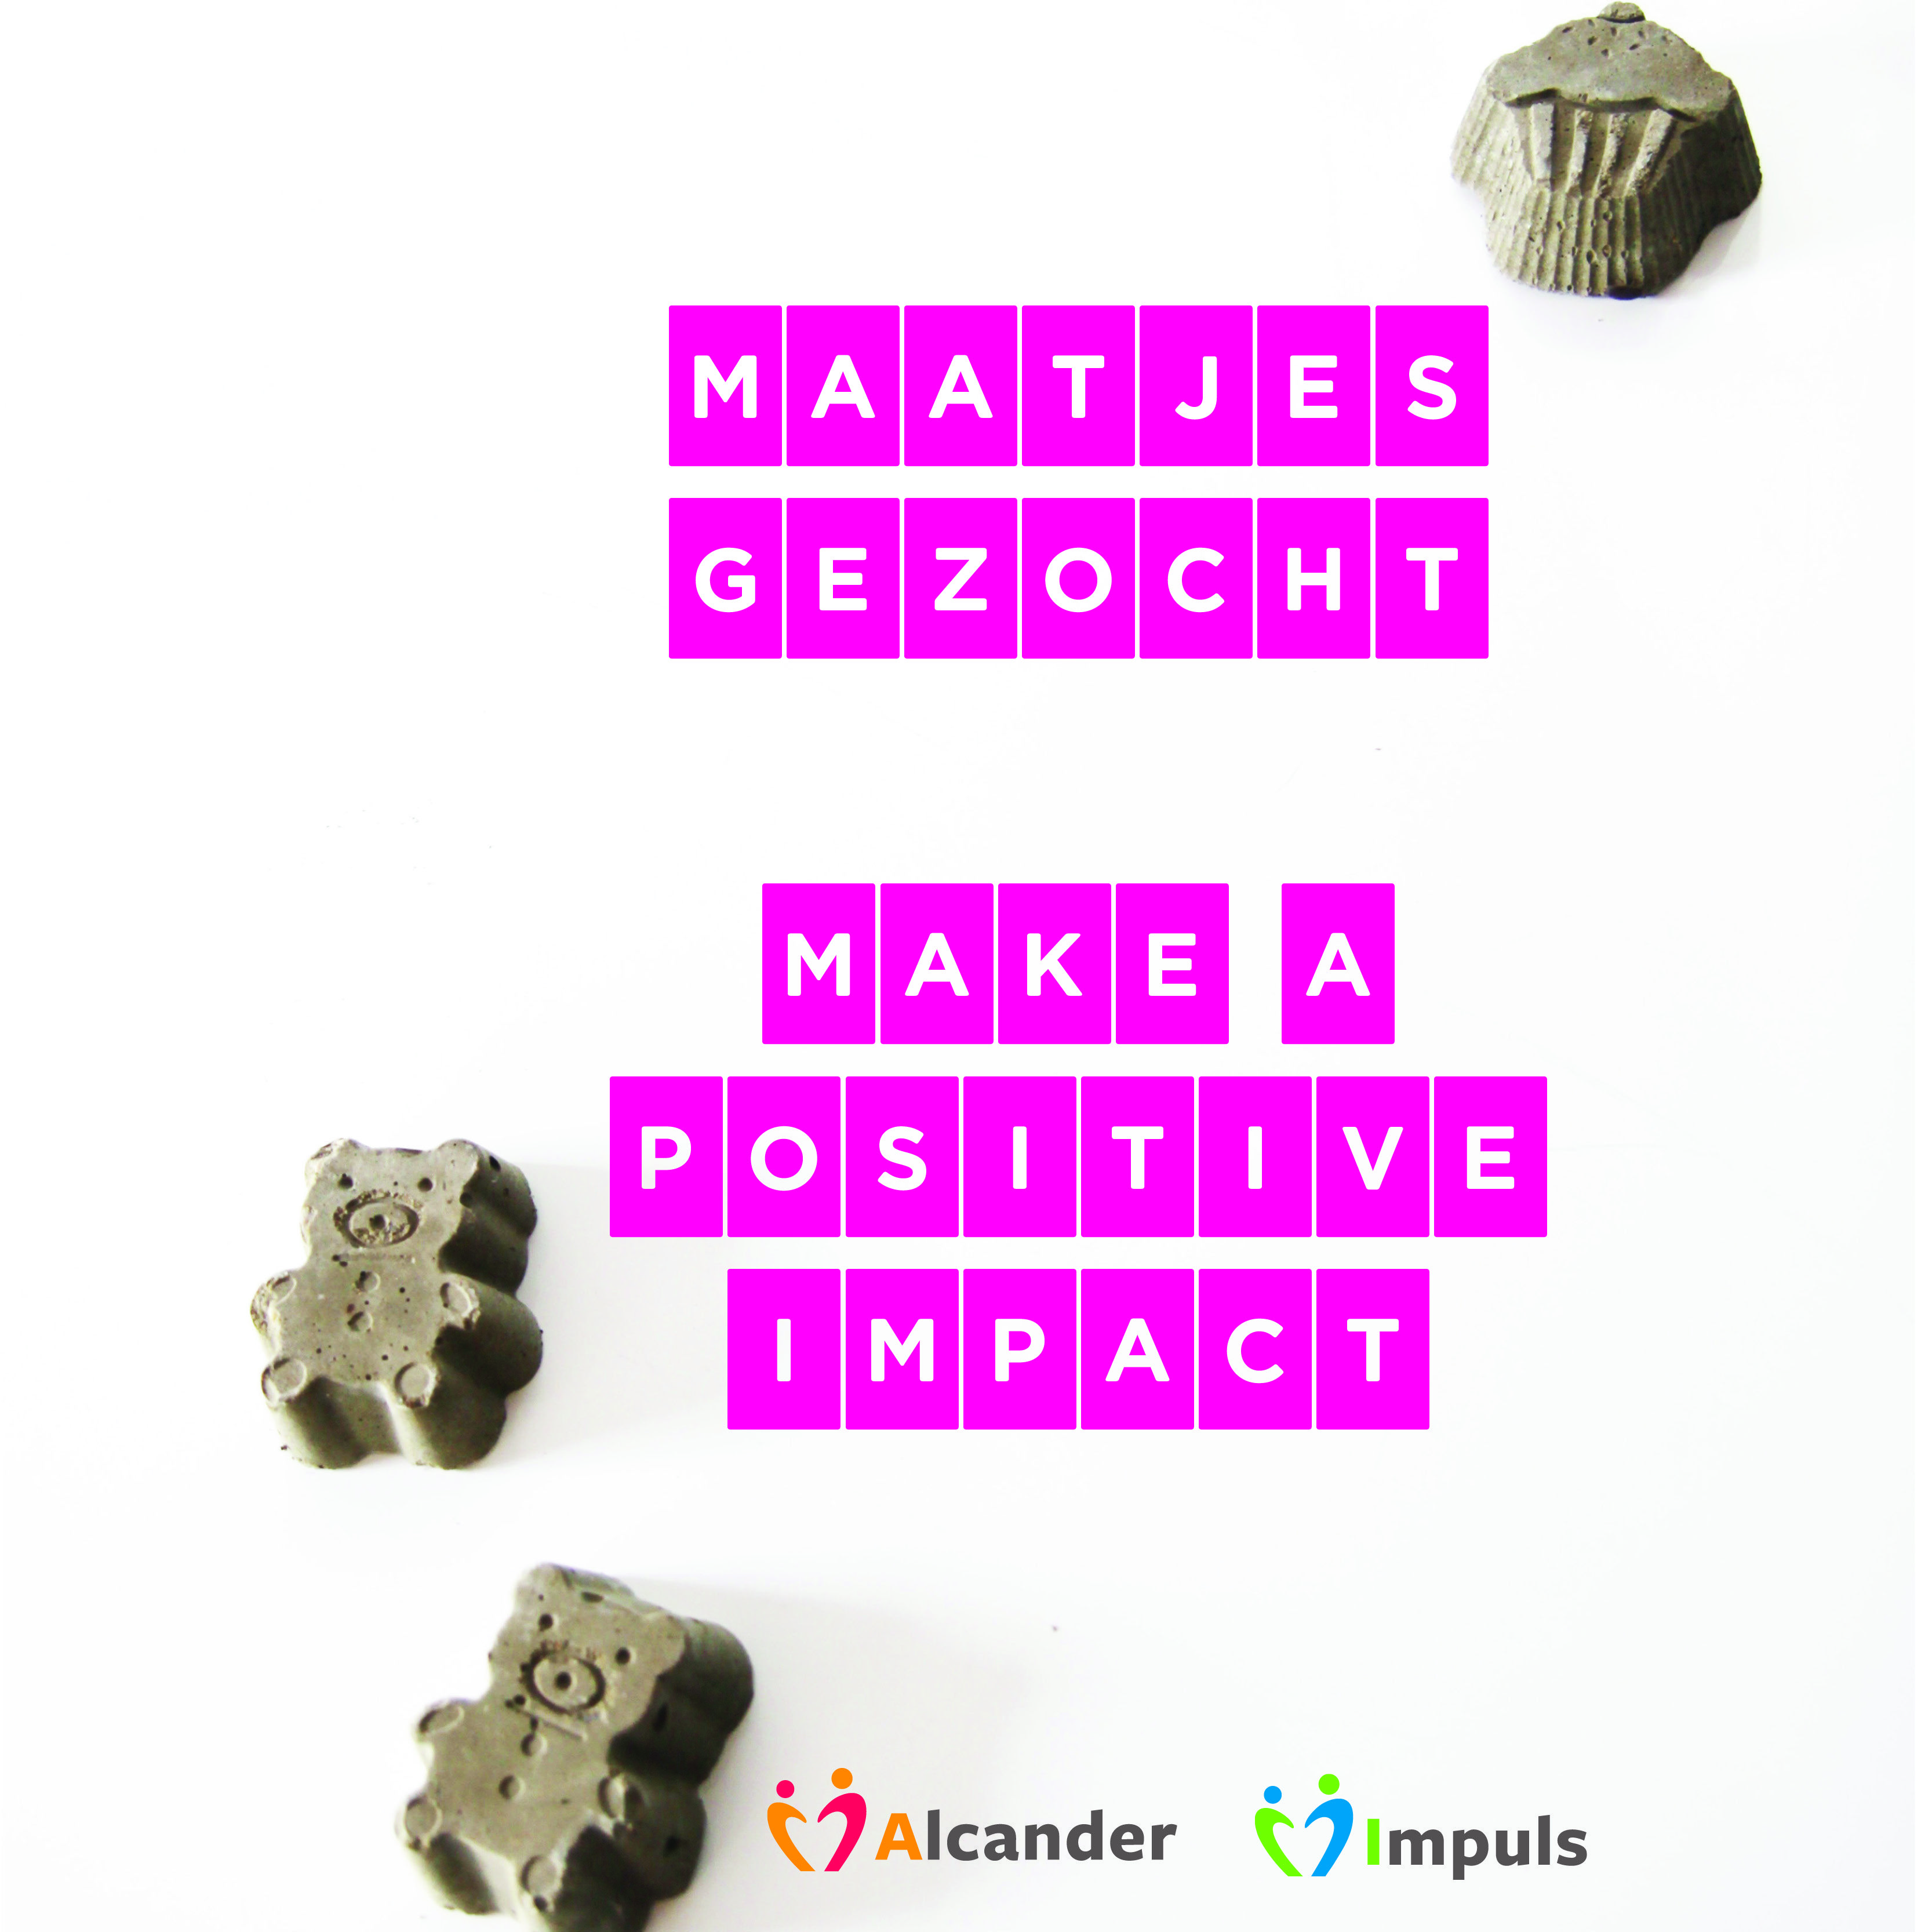 Campagne #Maatjesgezocht2017 - On- & offline communication, advertising and marketing based in the Netherlands. Portfolio: Concepting, graphic design, marketing, social media vlogging and creative directing, quotes, sustainable lifestyle www.mackintoshbranding.com info@mackintoshbranding.com https://www.facebook.com/mackintoshbranding/ https://www.instagram.com/mackintoshbranding/ https://www.linkedin.com/in/leandramackintosh/ https://www.youtube.com/channel/UC-n0tuuU31SVcRuzyqw_a6g